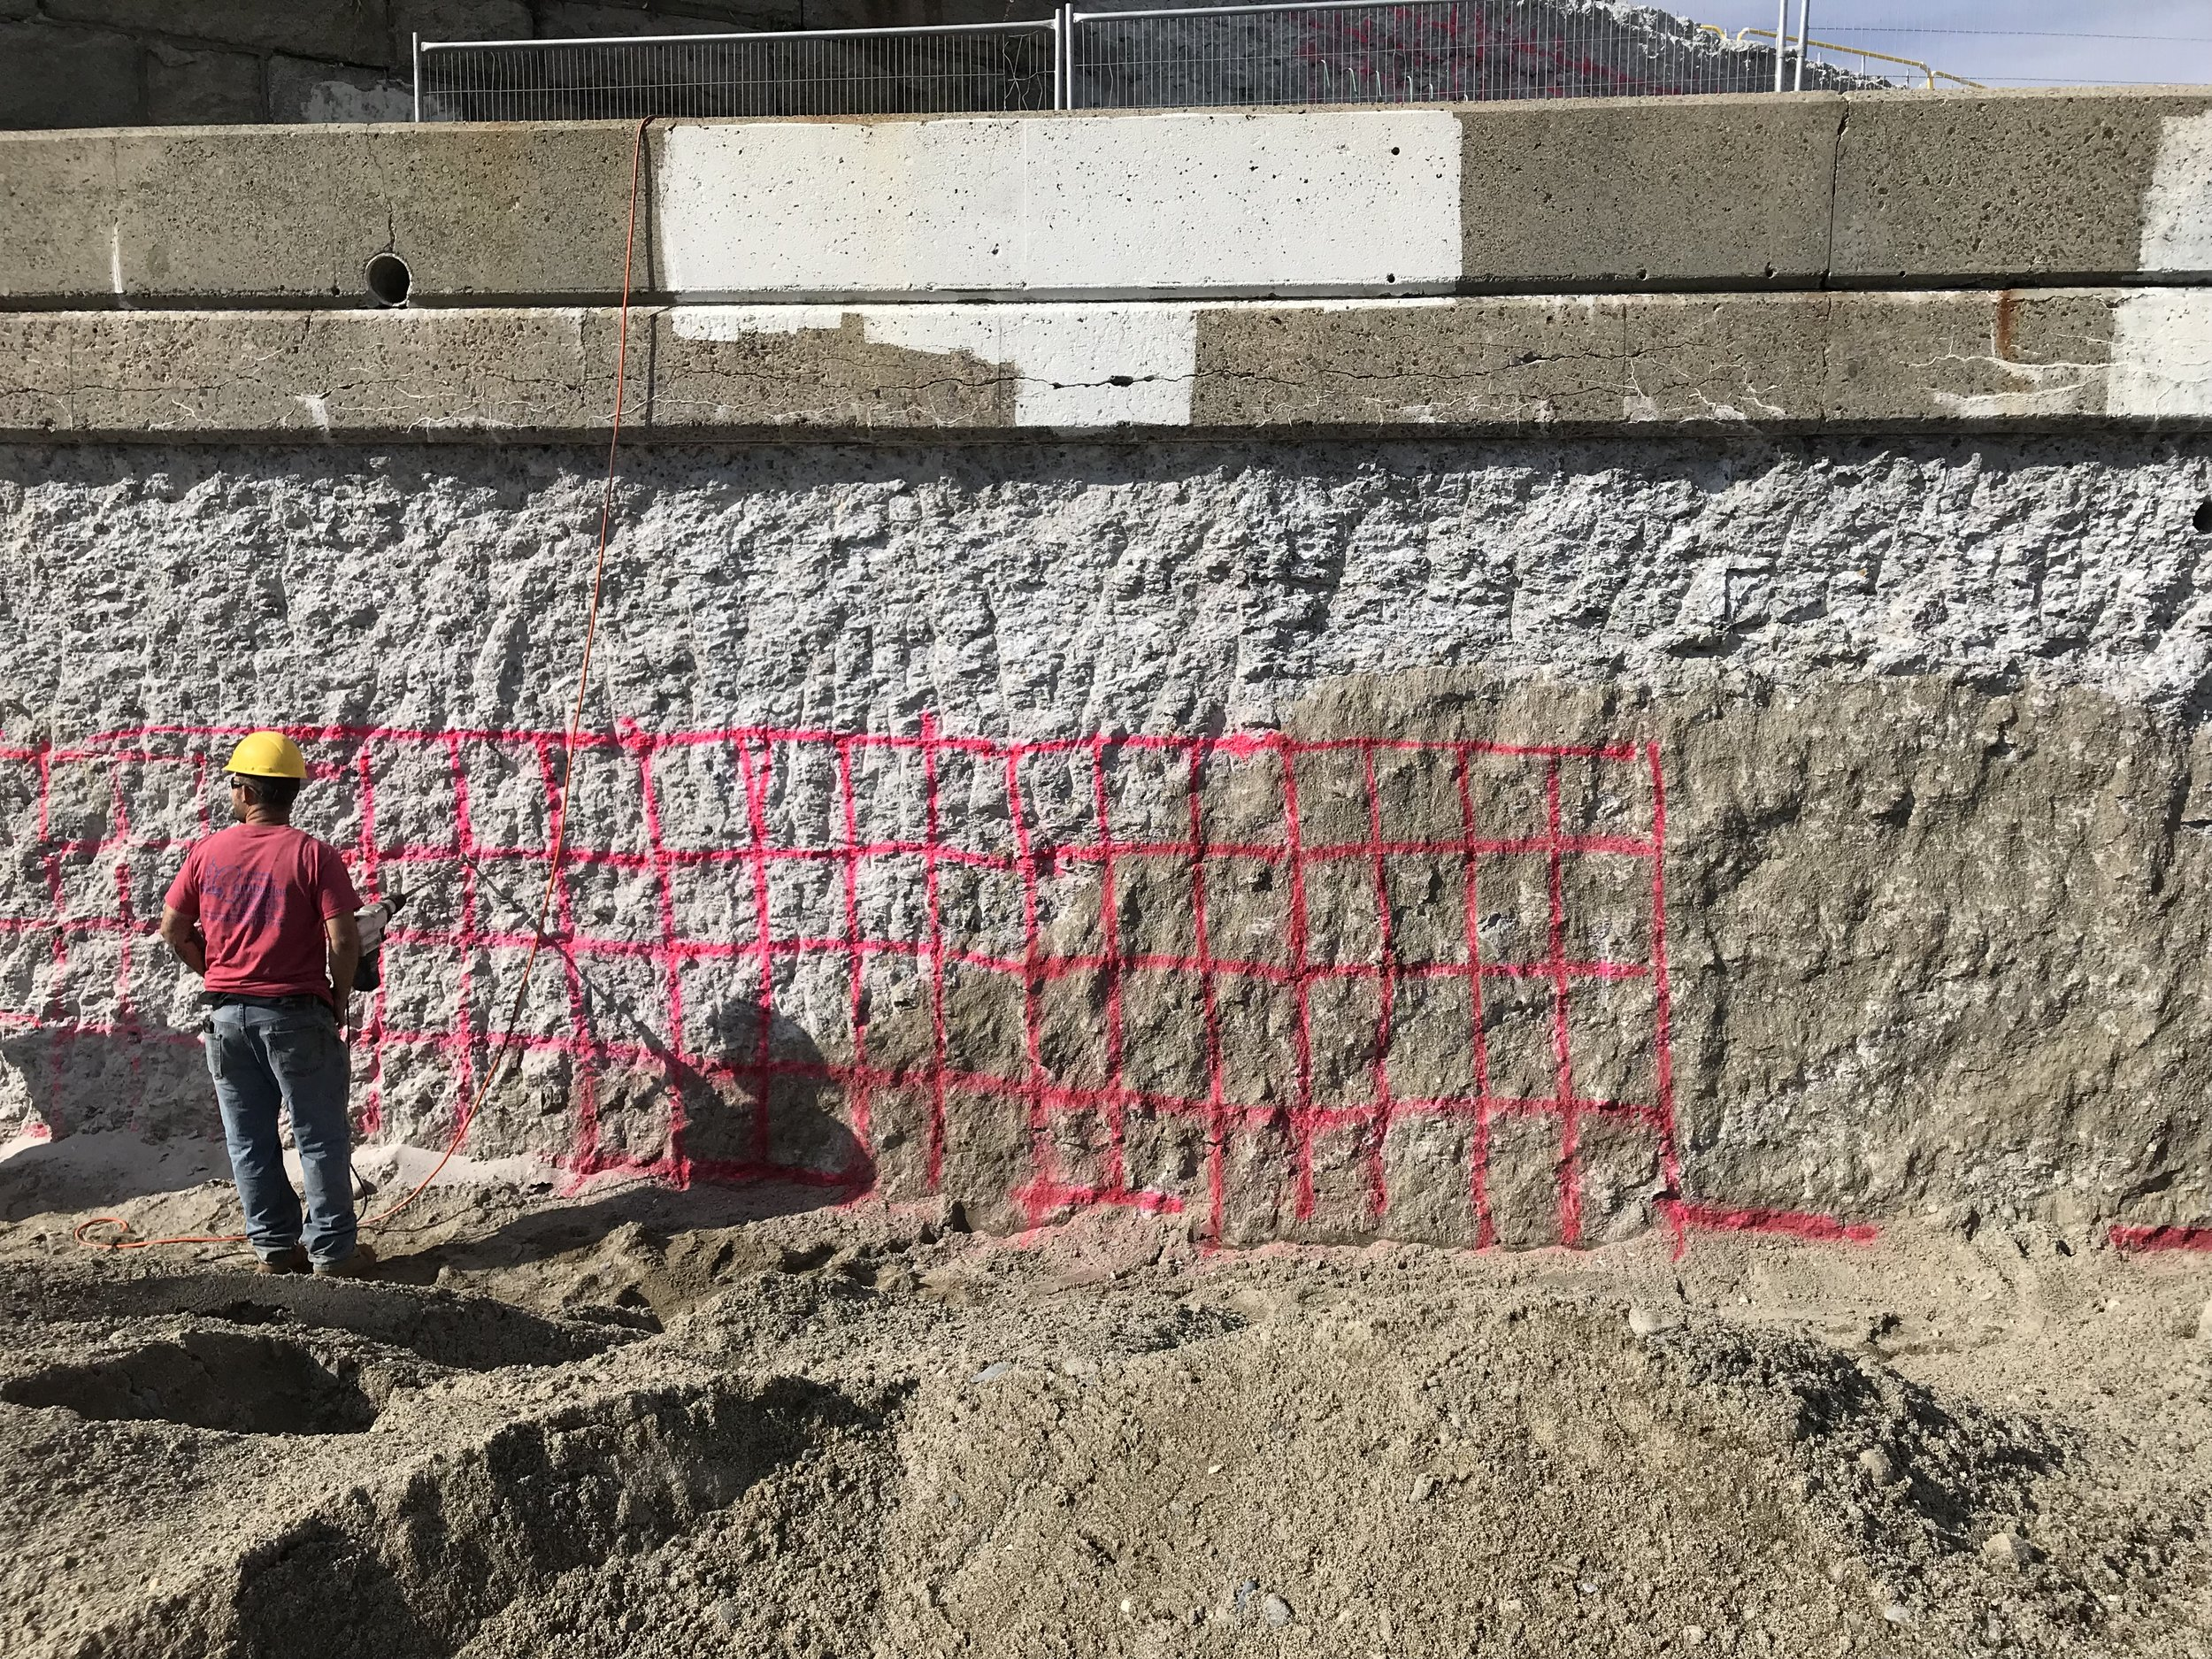 Concrete wall with grid pattern